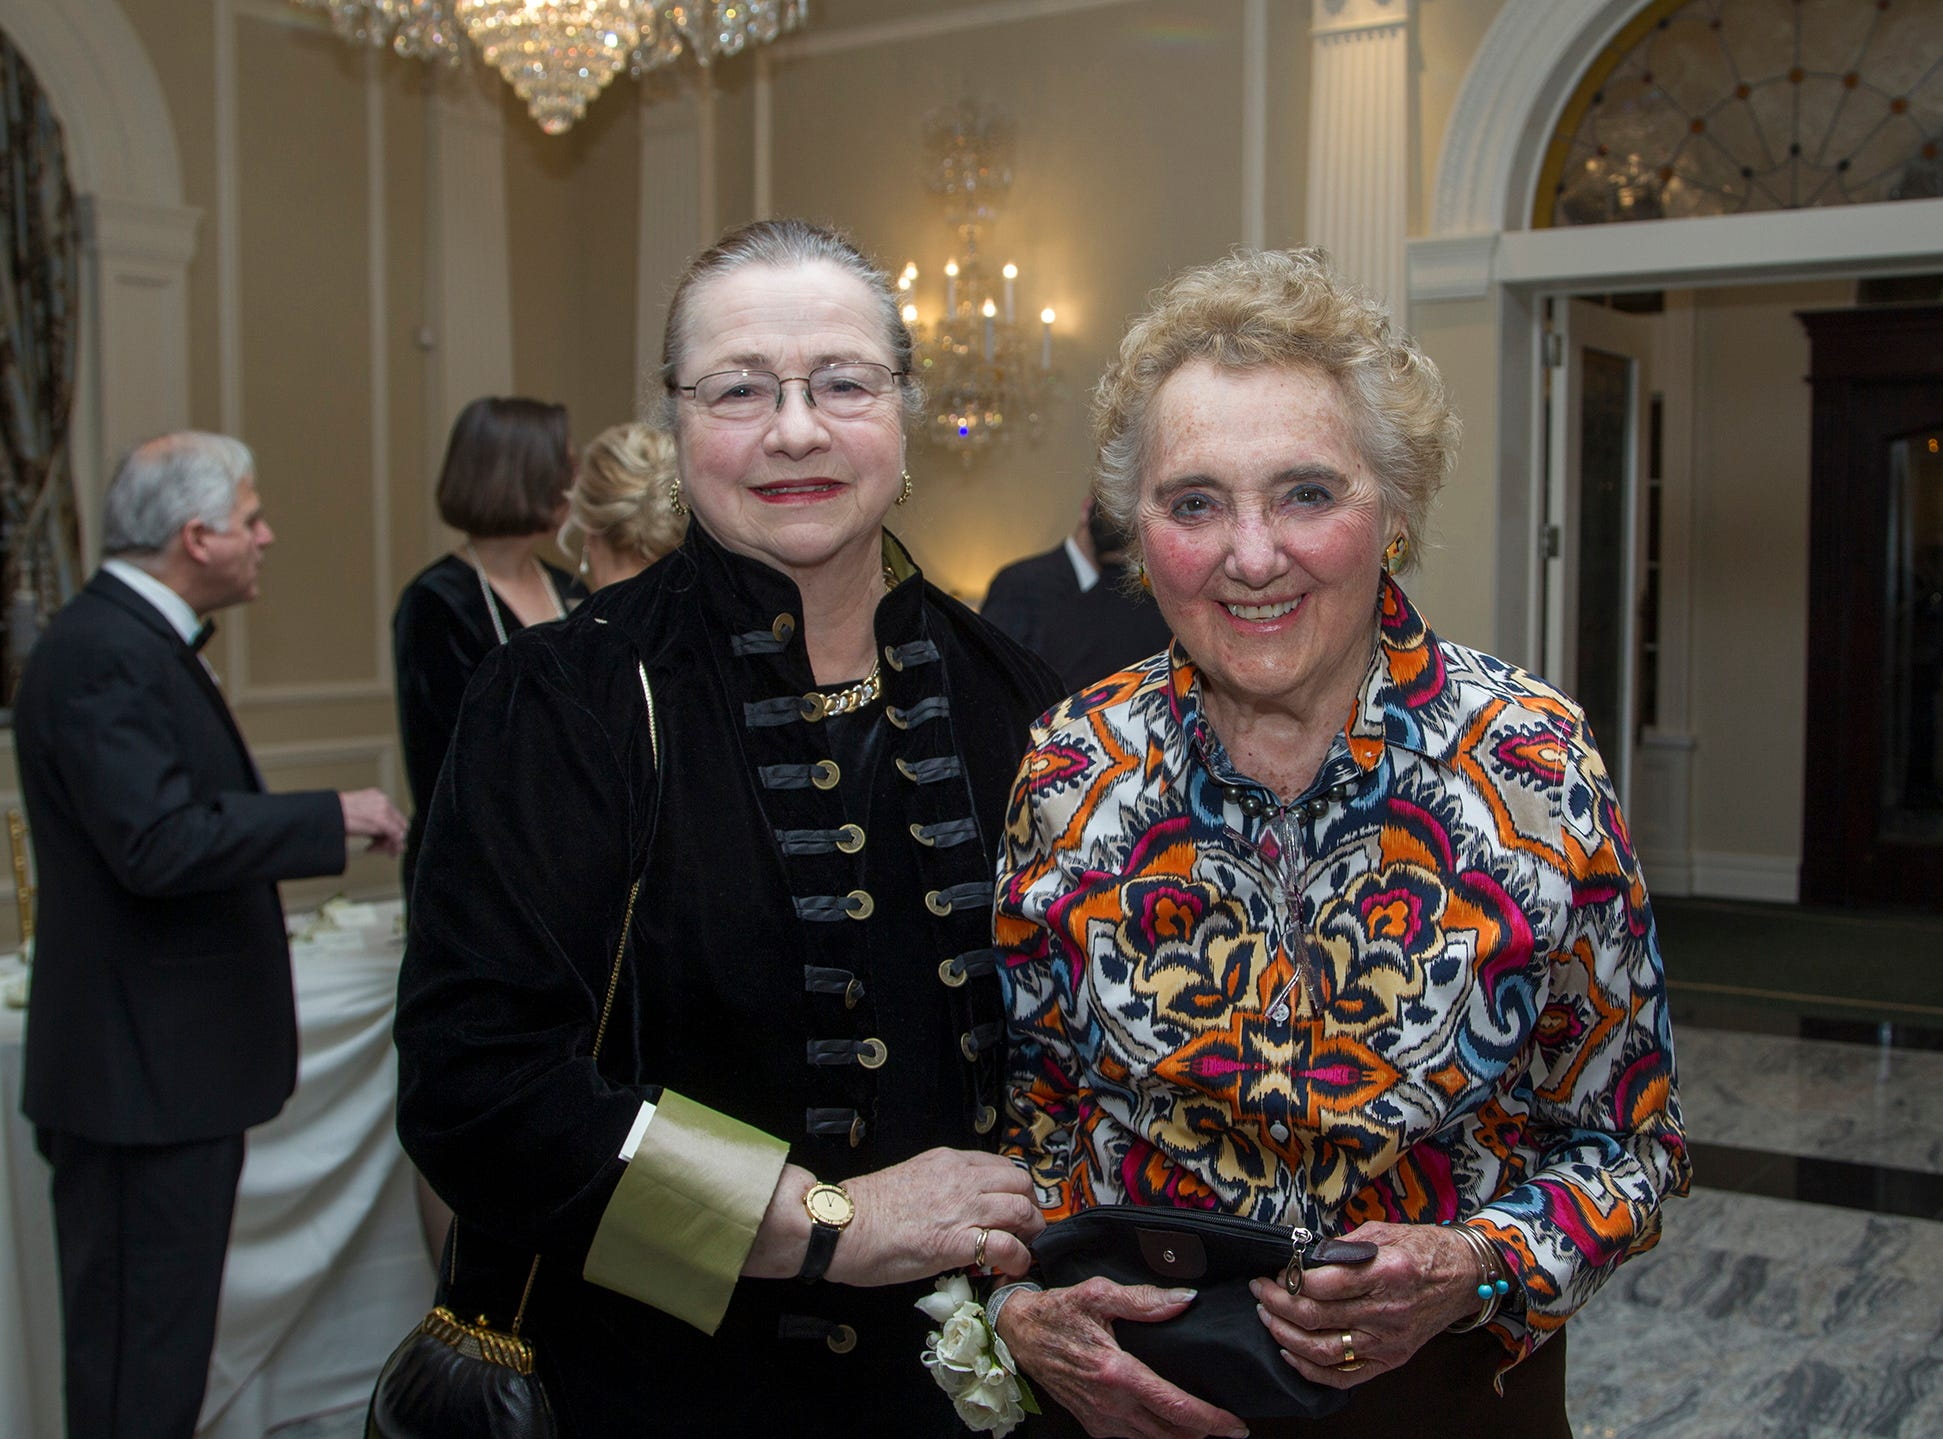 Rosalie Berlin and Elaine Adler. Ramapo College held its 37th Annual Distinguished Citizens Dinner at Rockleigh Country Club. 03/02/2019